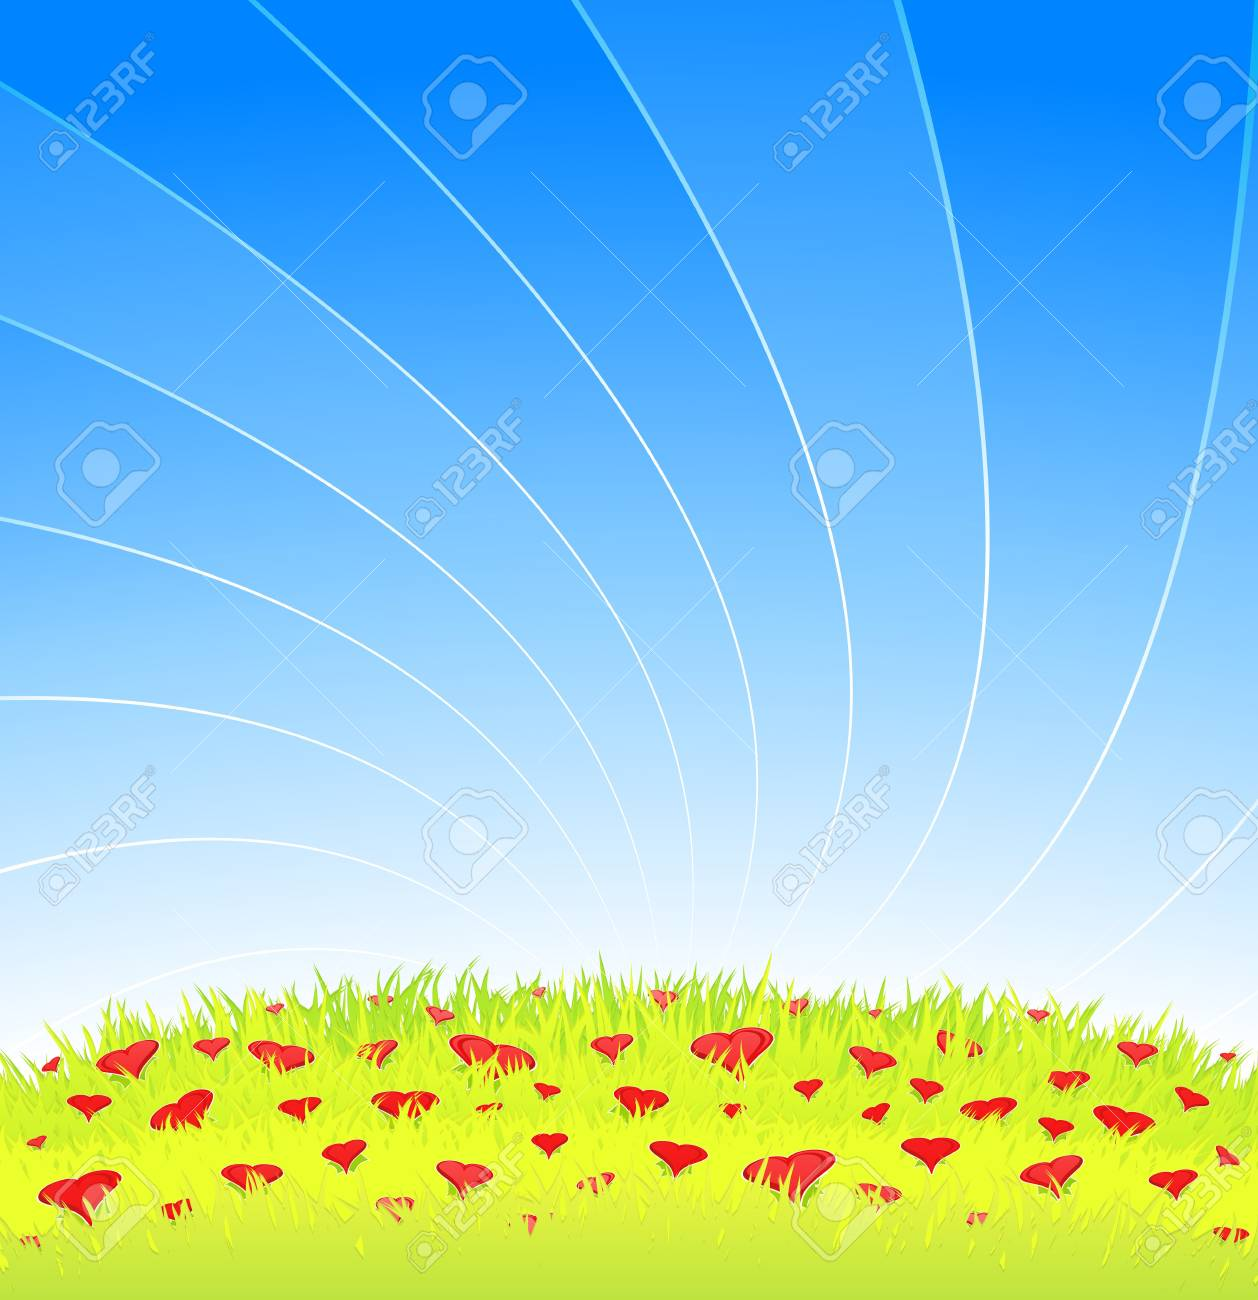 Vector illustration of a beautiful romantic meadow with blue lined sky and detailed grass full of lovely heart flowers. Copy space for custom text. Stock Illustration - 4133419